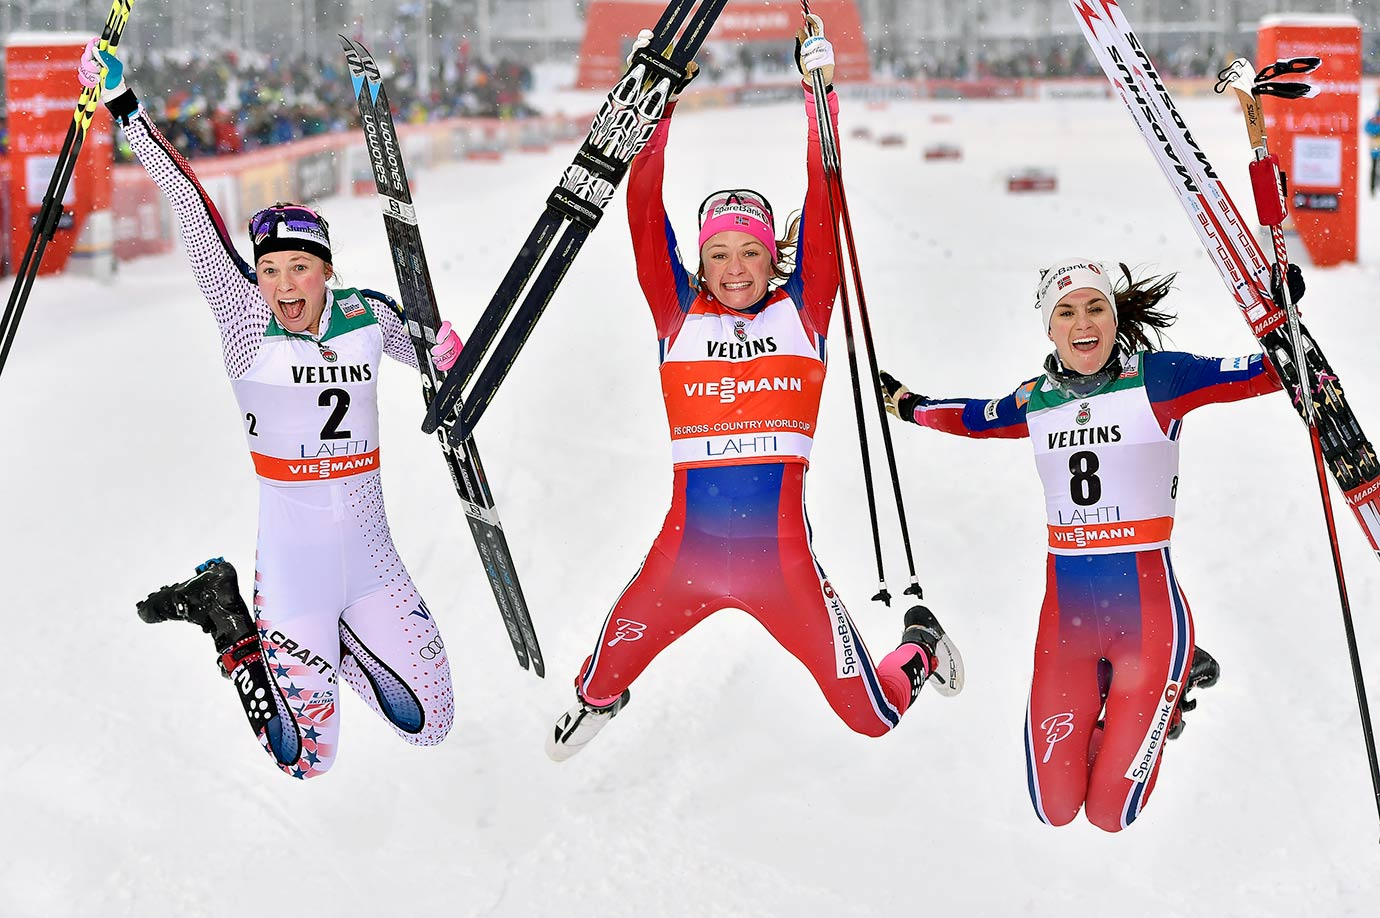 USA's Jessica Diggins, Norway's Maiken Caspersen Falla and Heidi Weng celebrate after medalling in the FIS Nordic World Cup Men's and Women's Cross Country Sprint in Lahti, Finland.